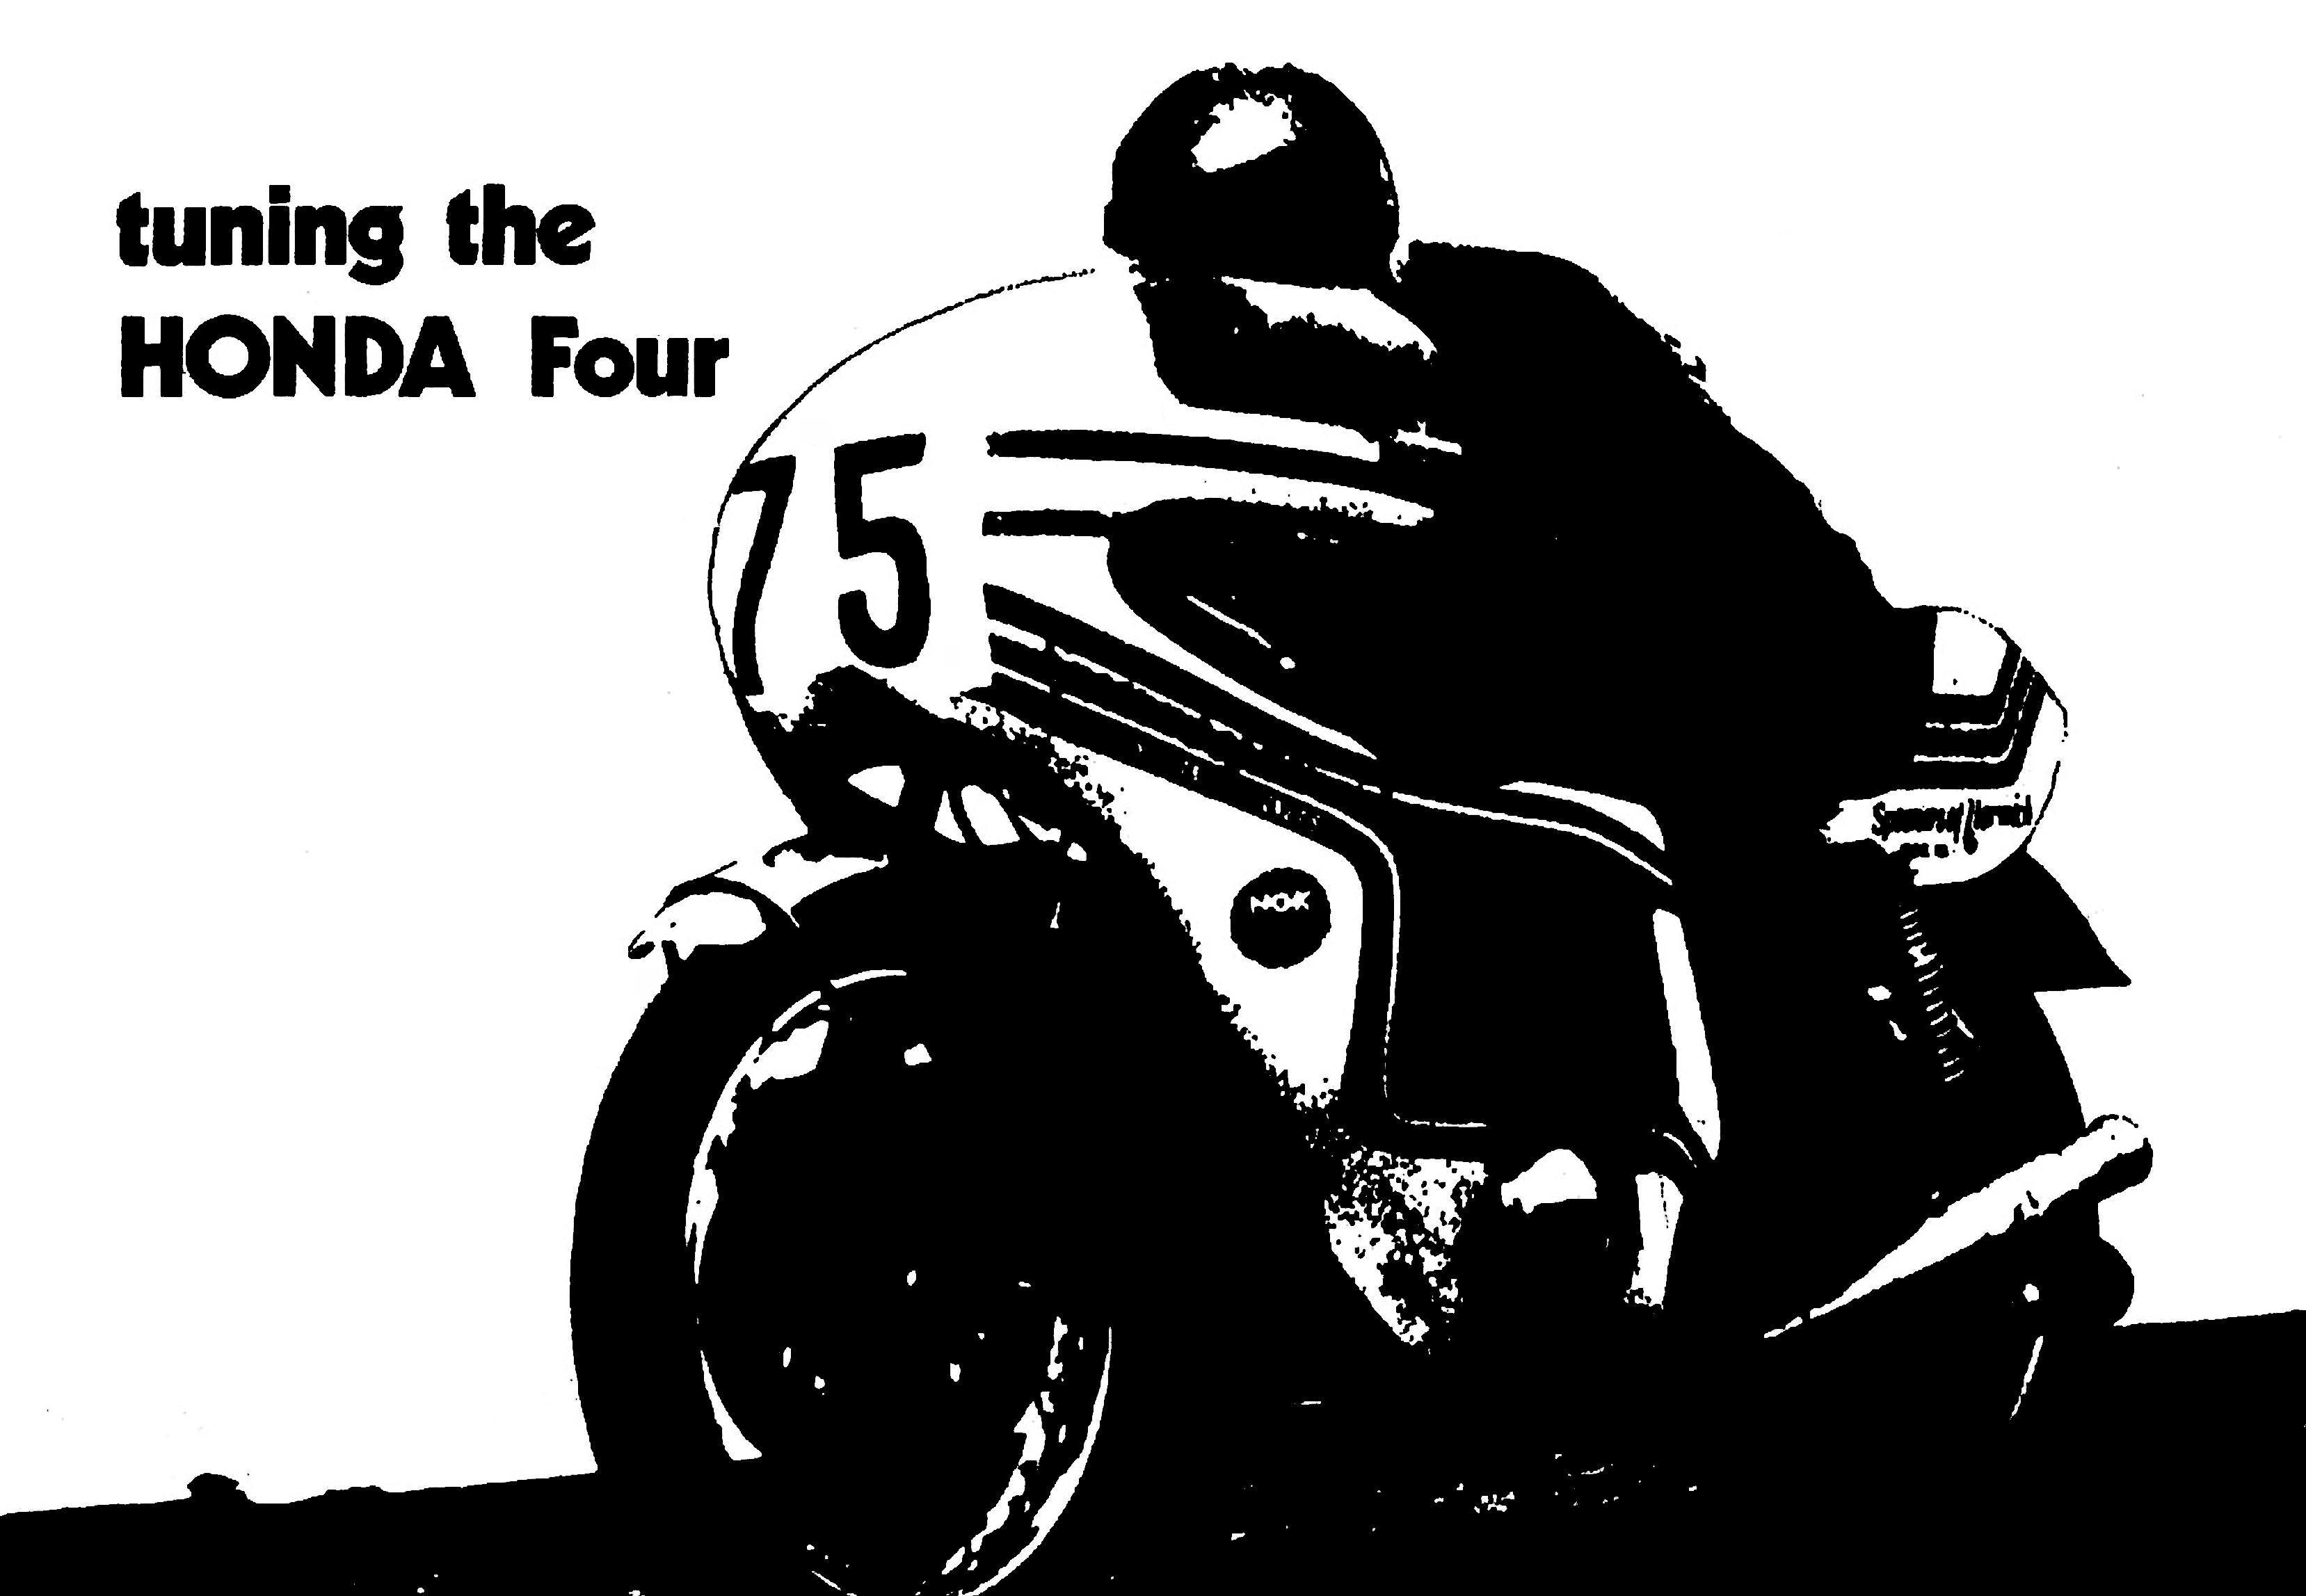 Honda Four Tuning Manual for Honda CB450F